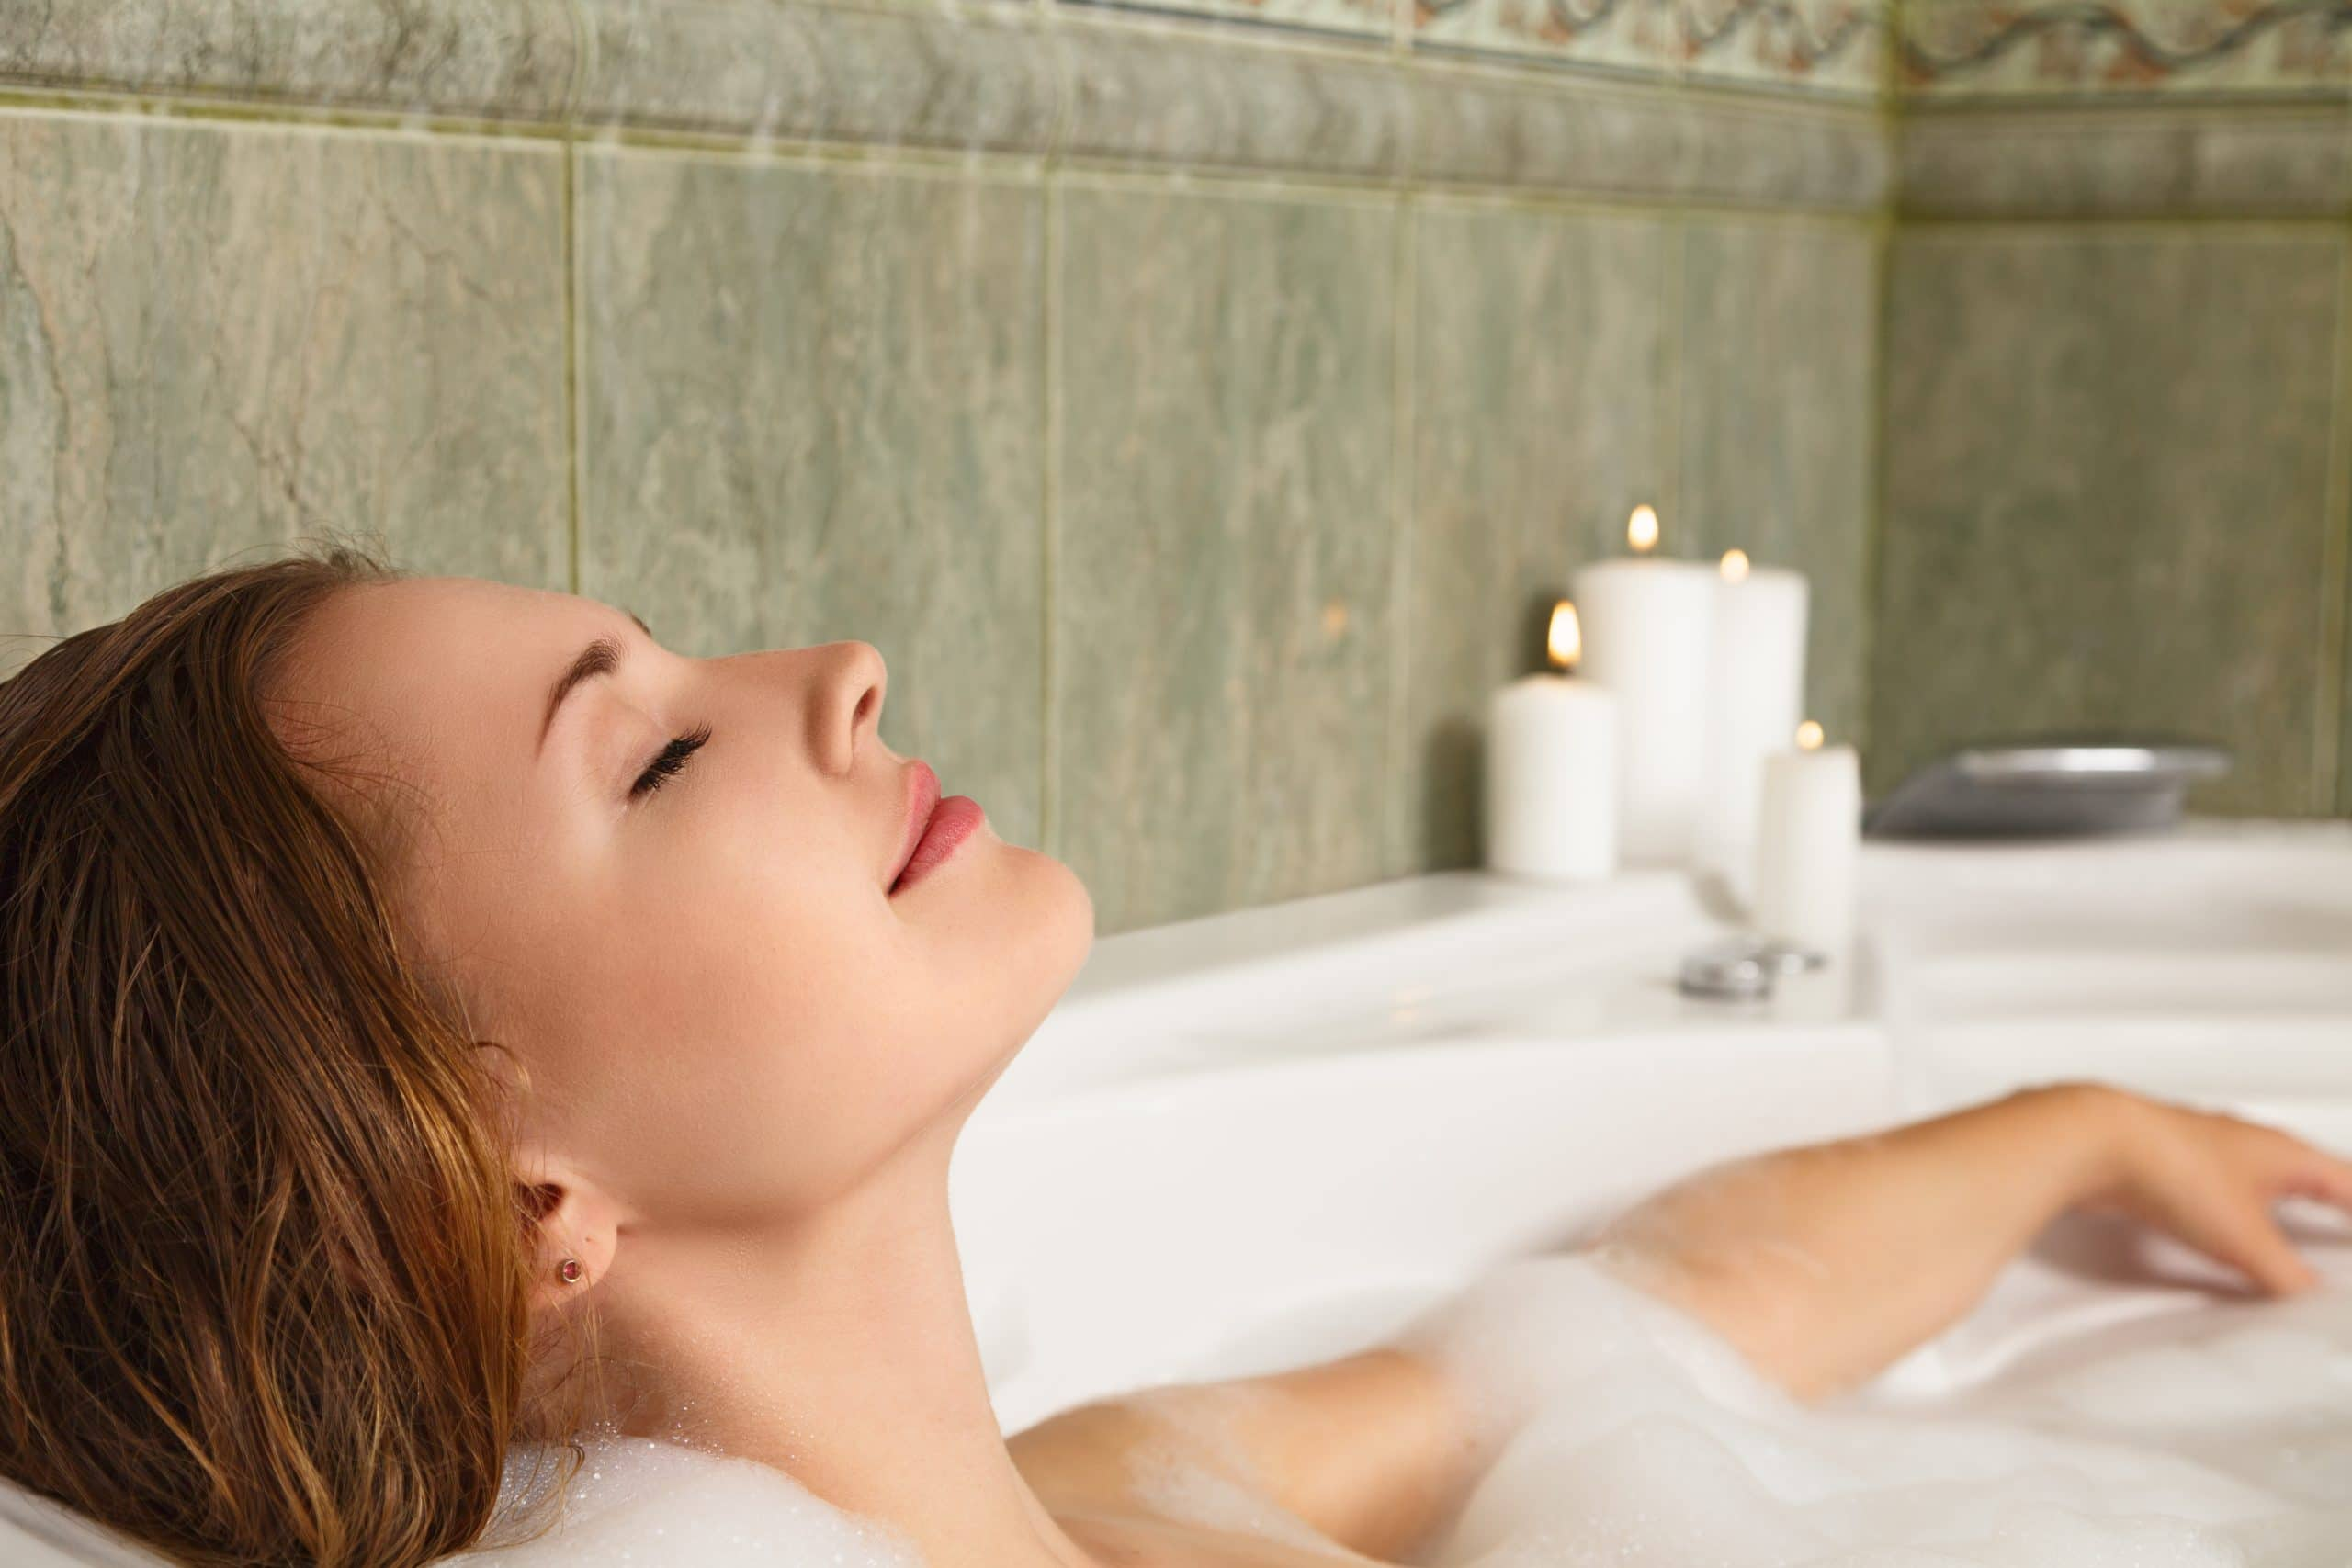 Take Advantage of Self Care Activities During COVID-19 Isolation